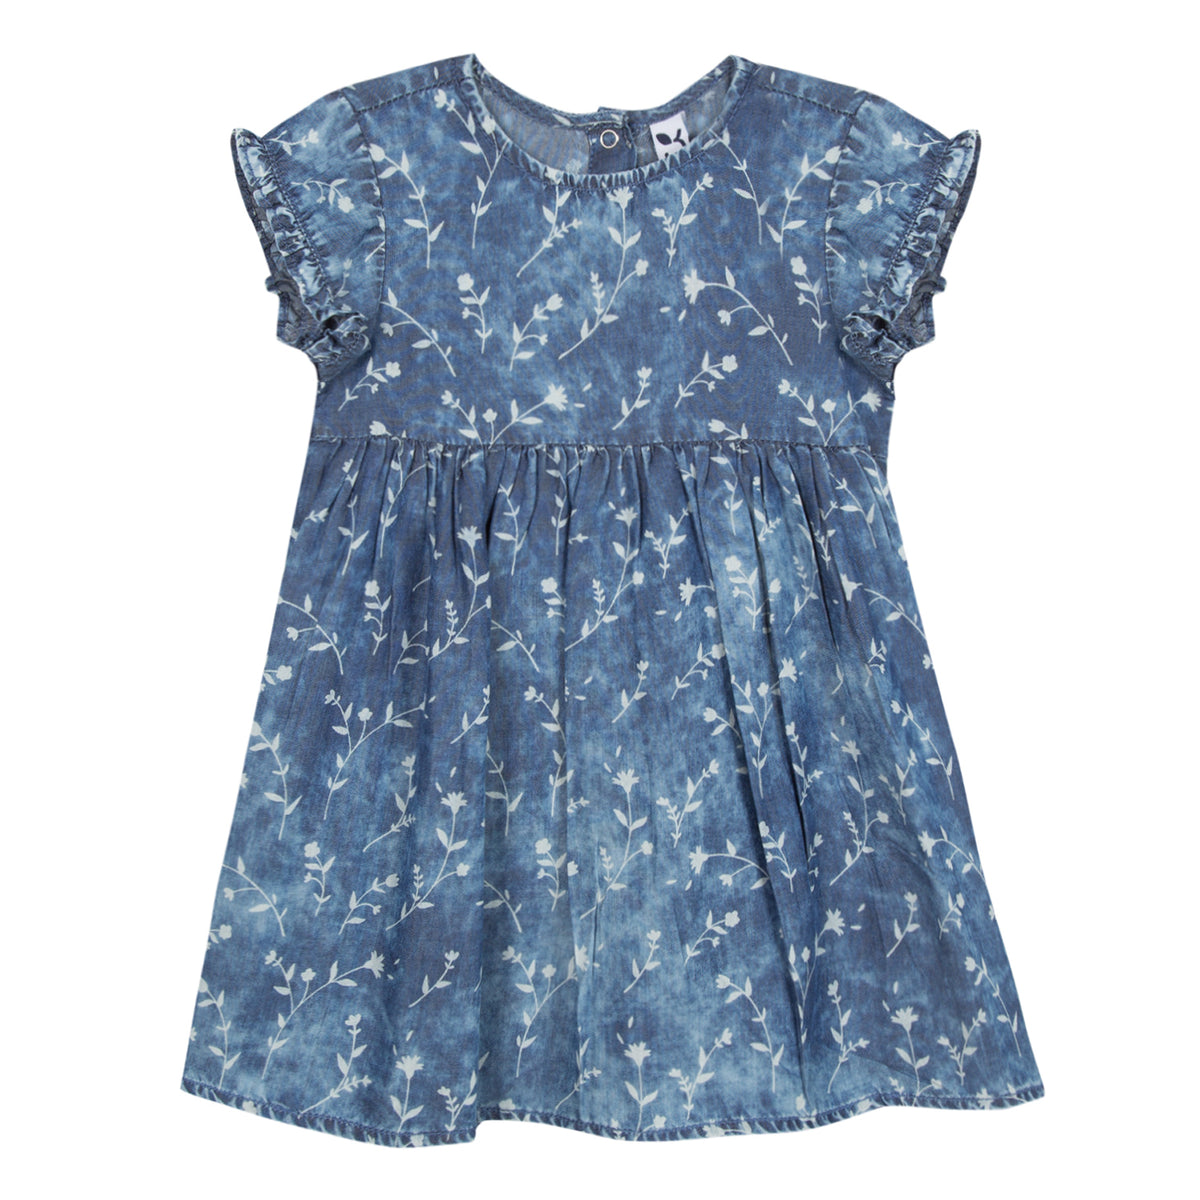 Baby & Toddler Girls Denim Print Dress